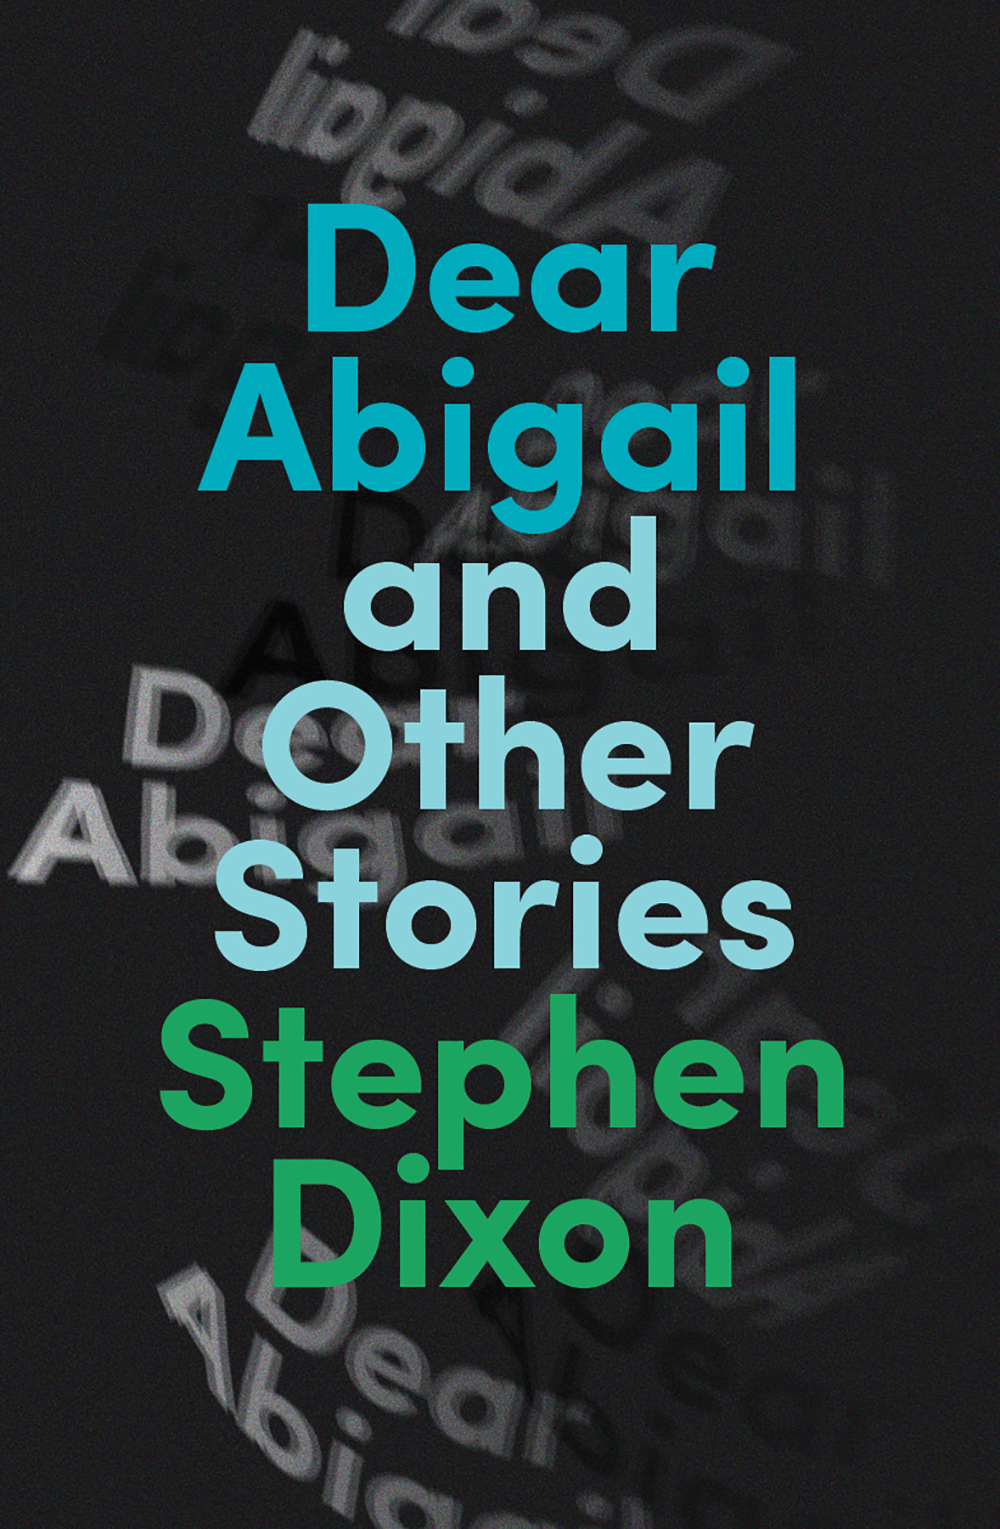 Dear Abigail and Other Stories